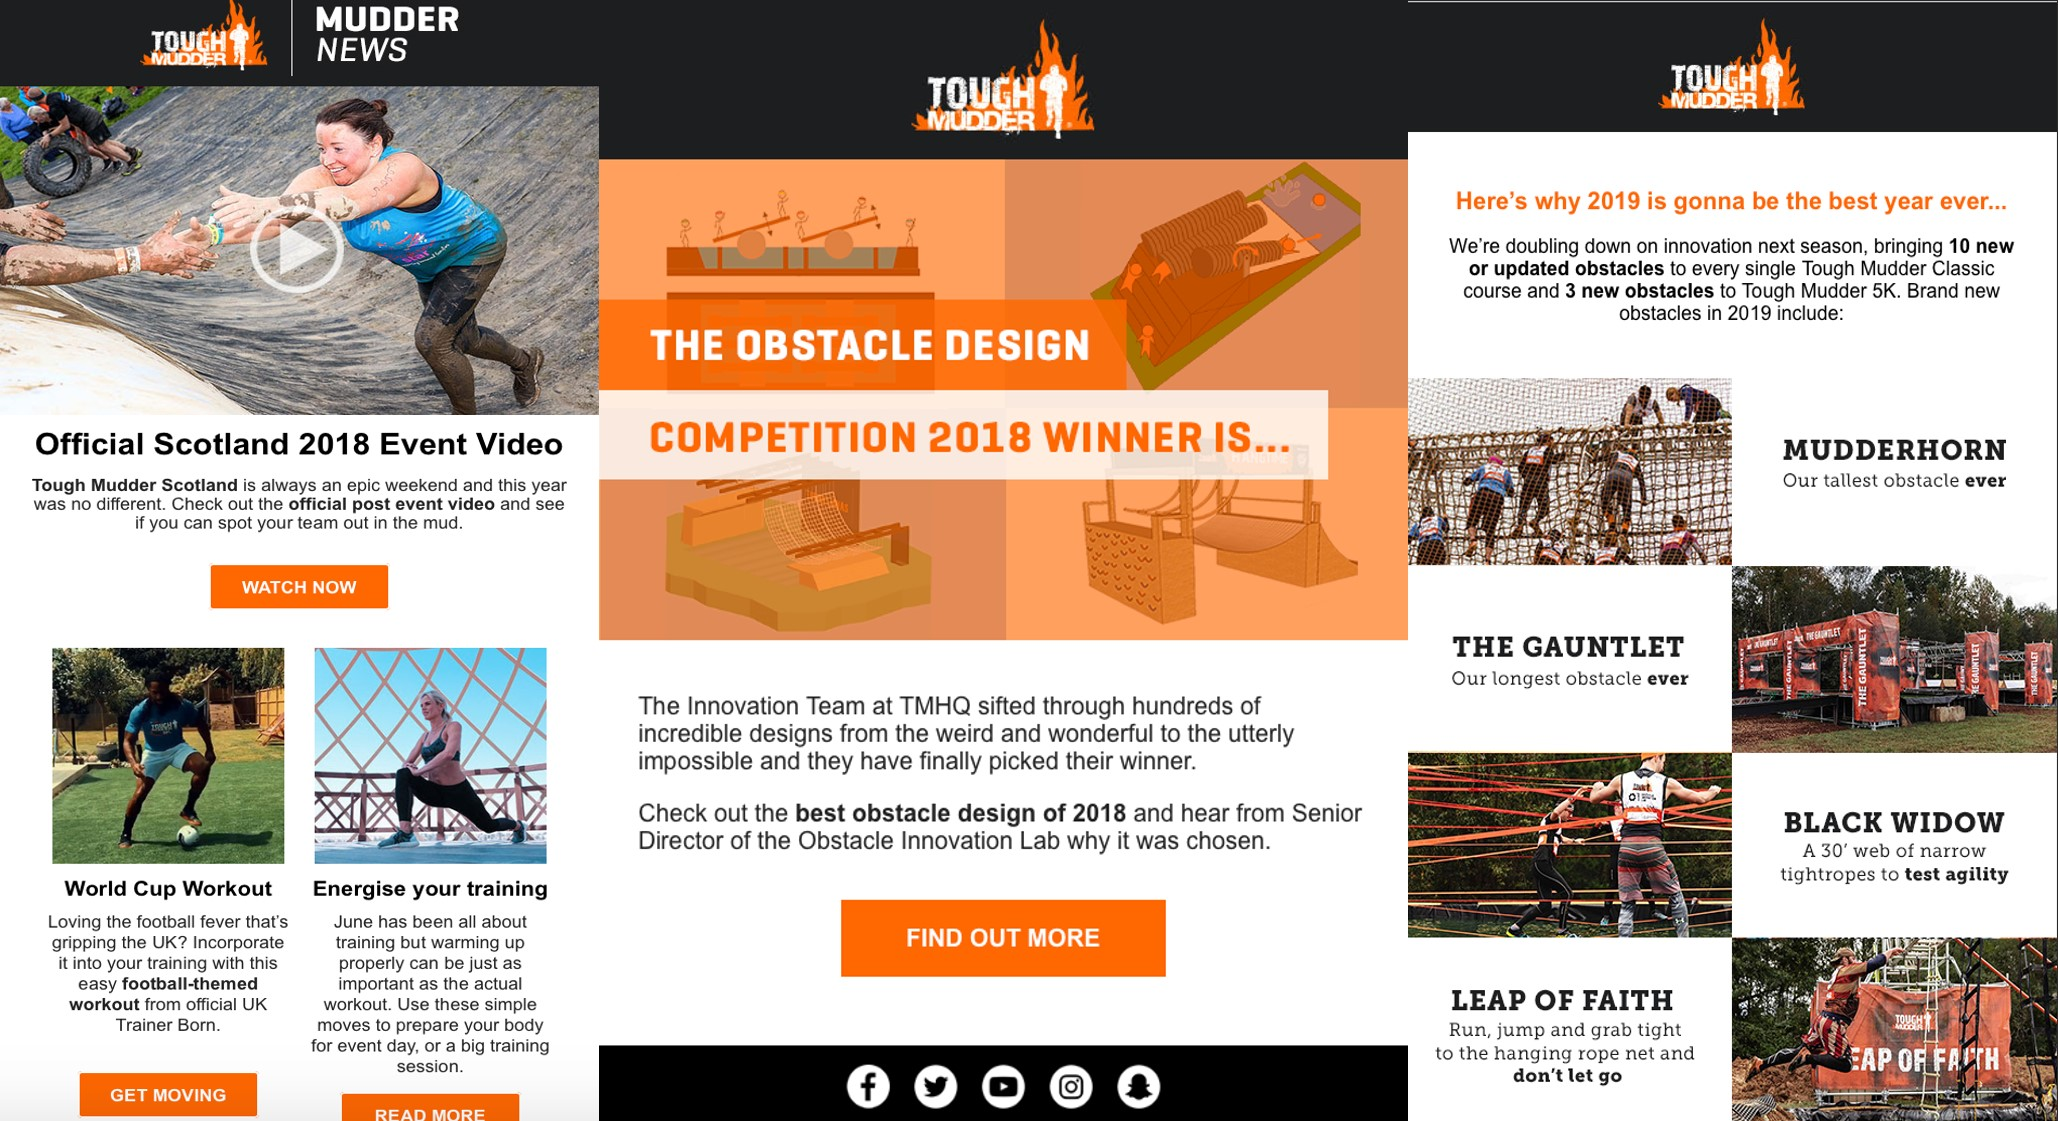 Tough Mudder email marketing